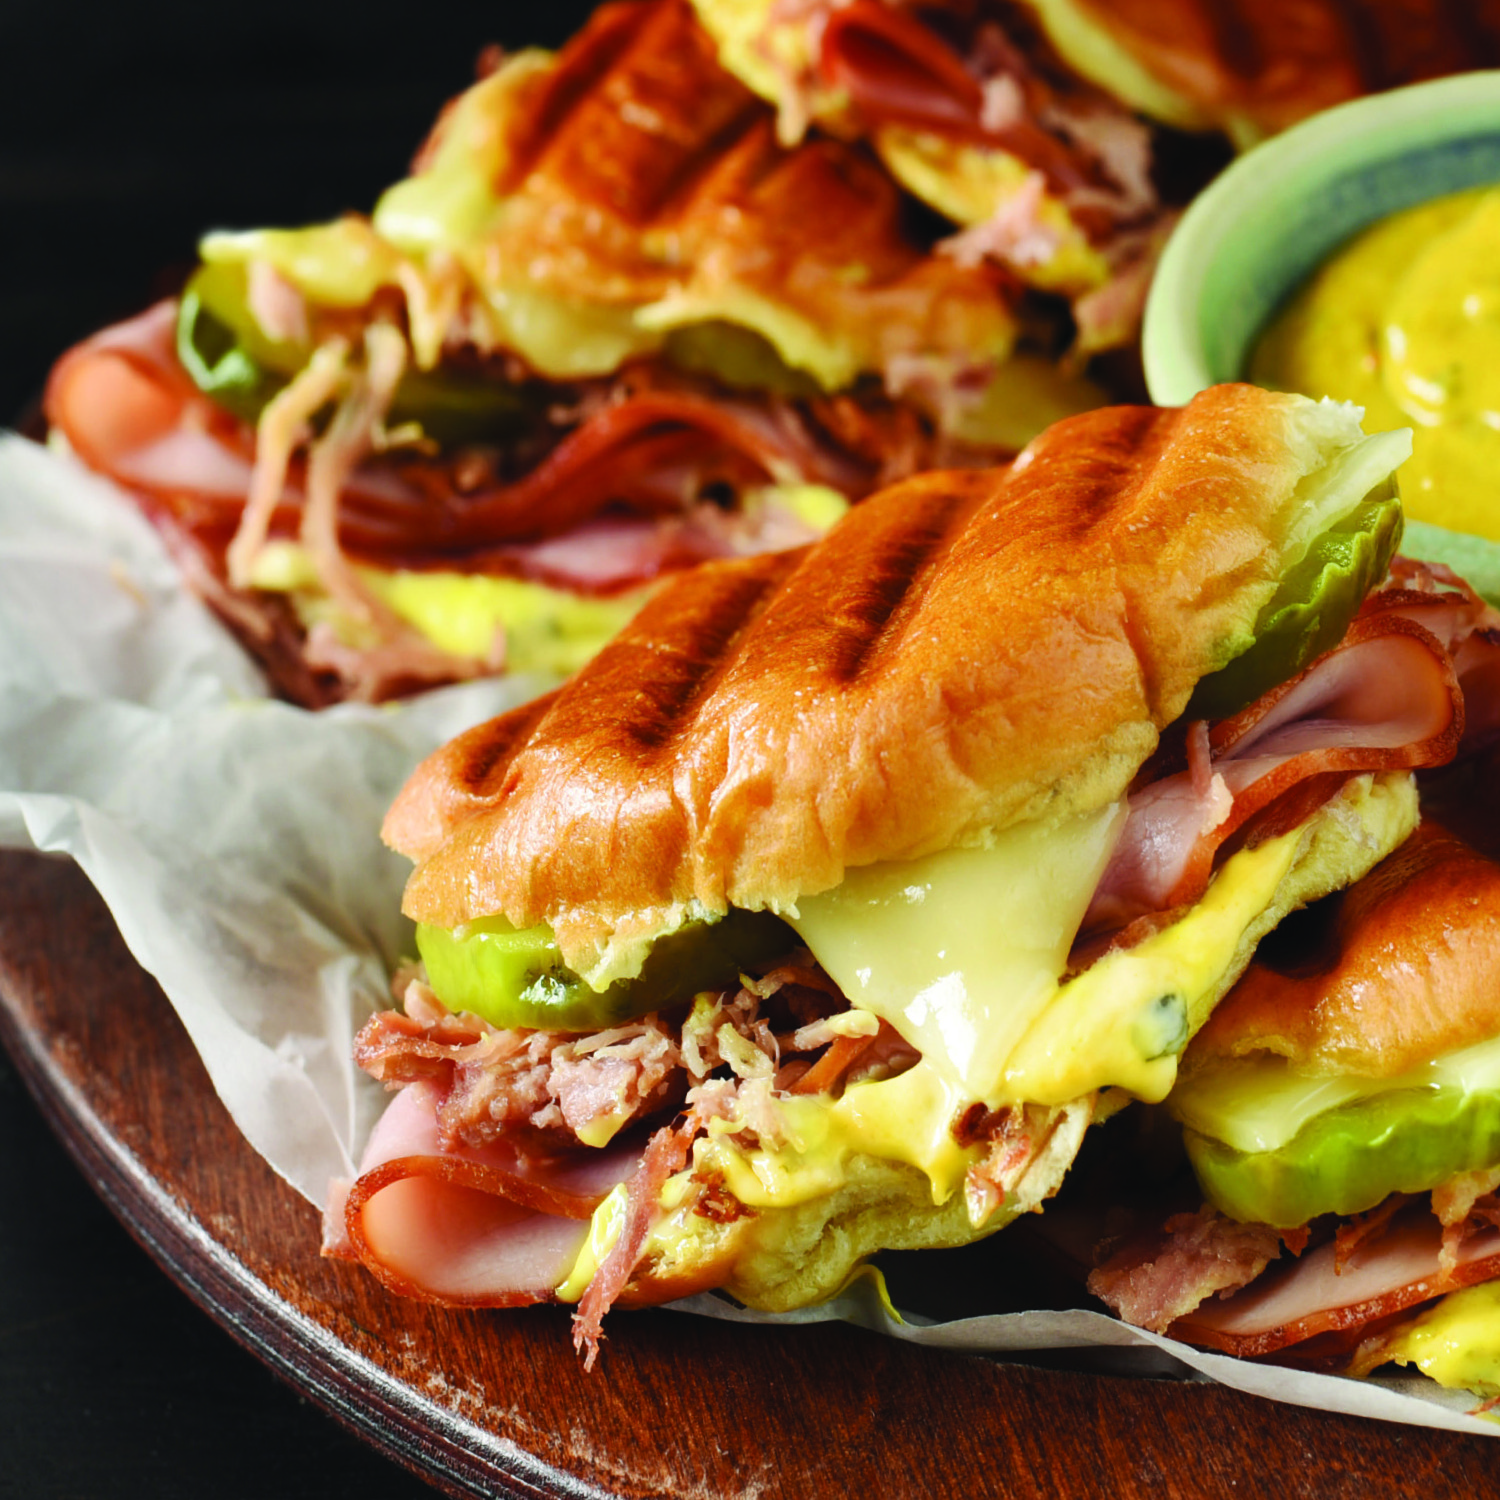 Grilled cuban mustard sliders